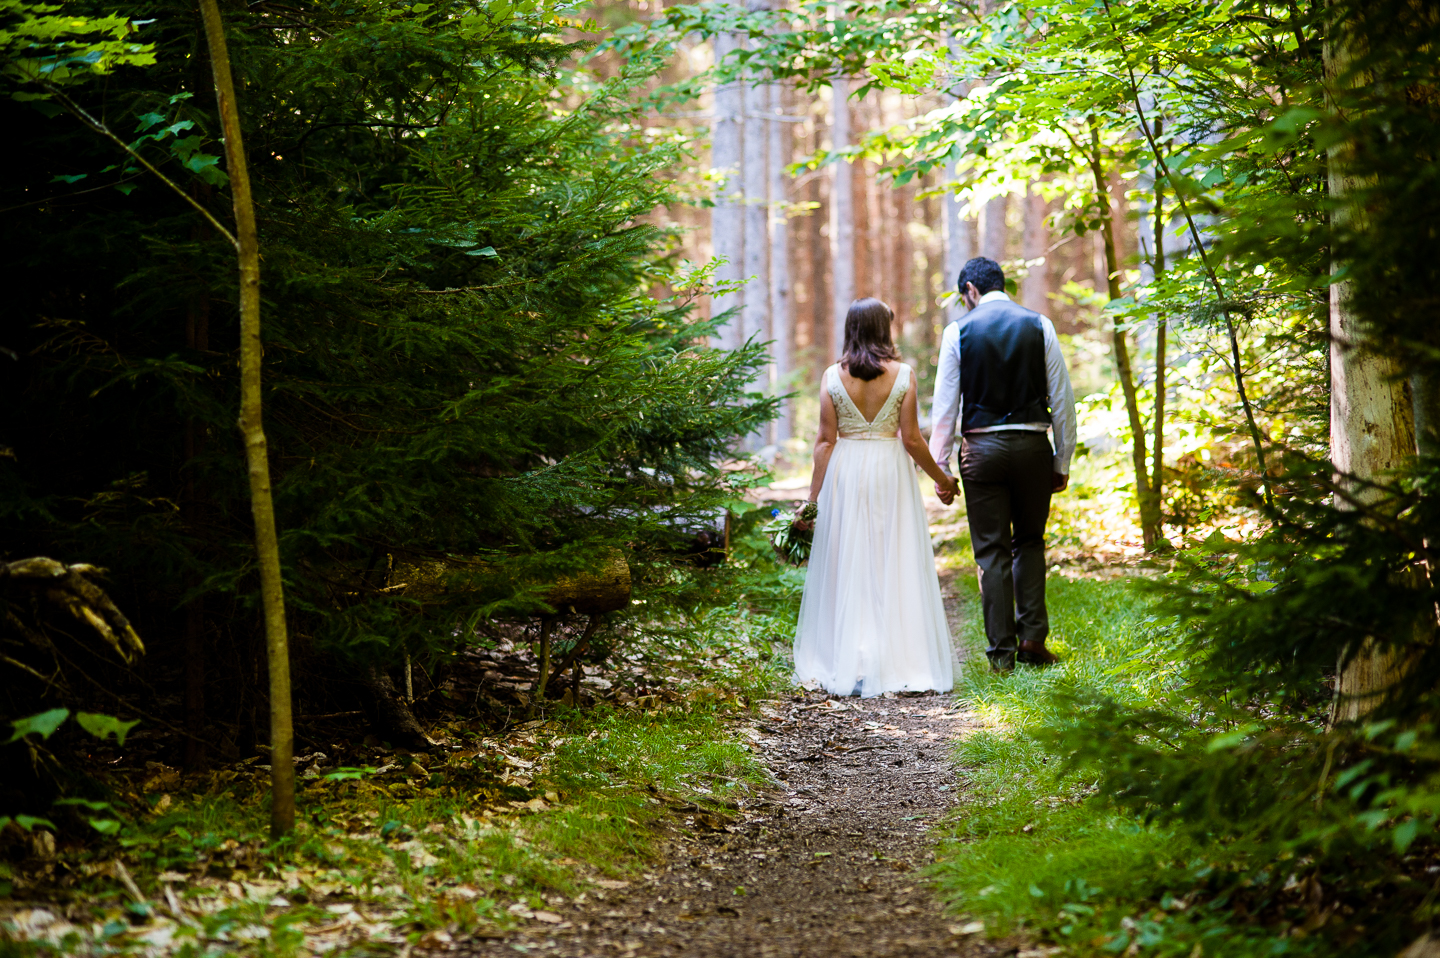 bride and groom hold hands and walk down beautiful wooded path